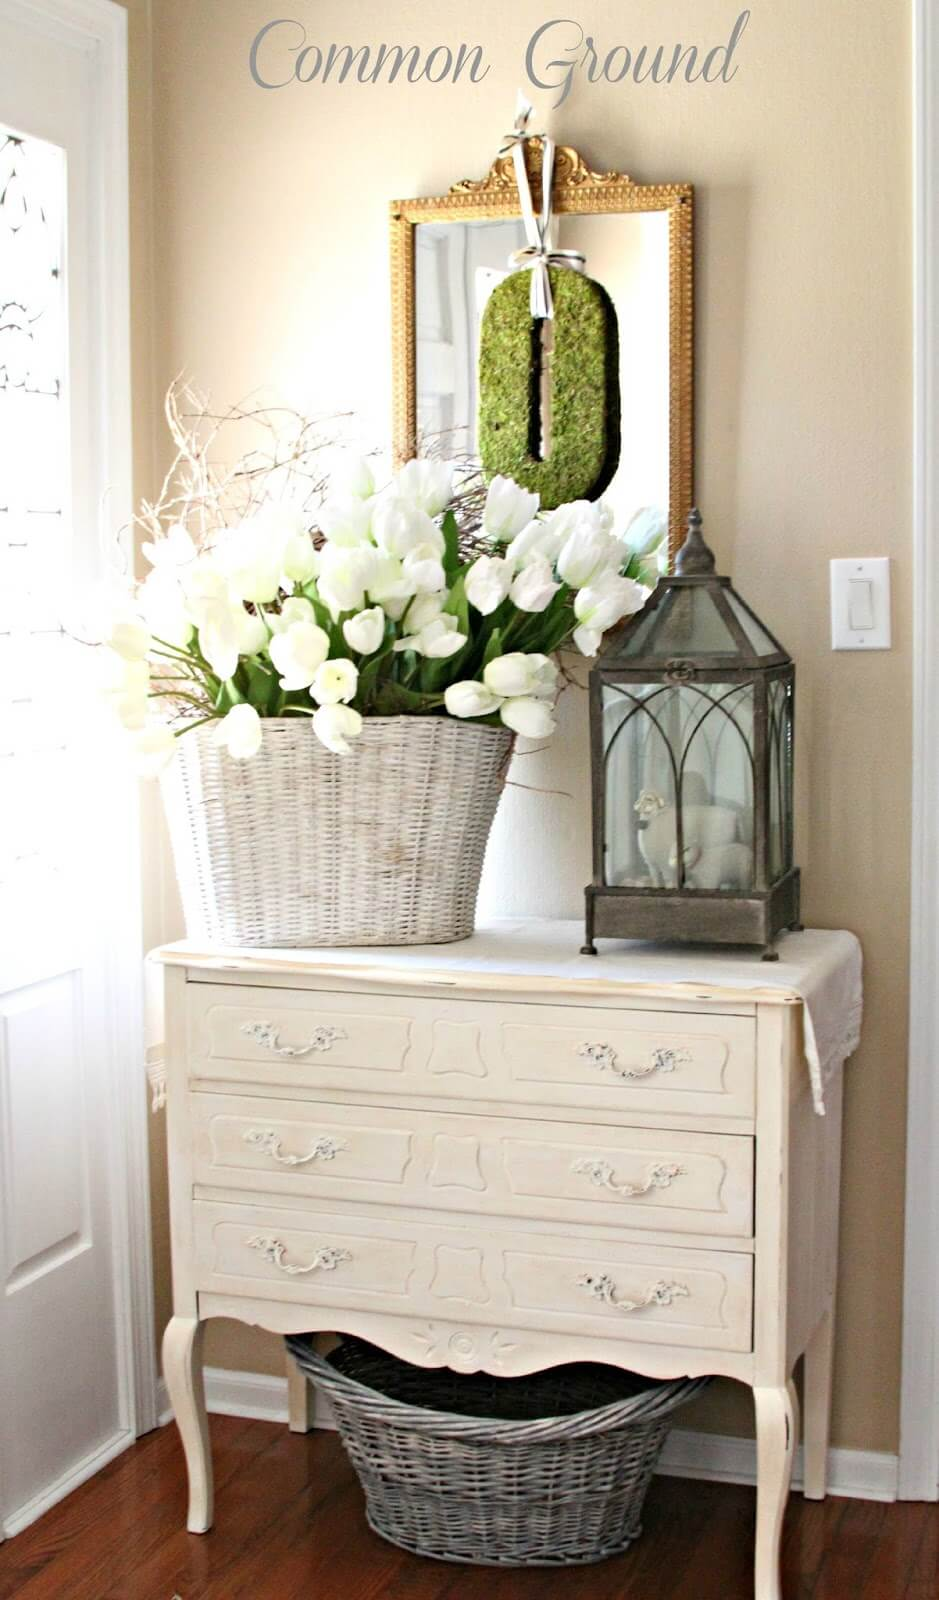 Springtime French Country-Inspired Foyer Display